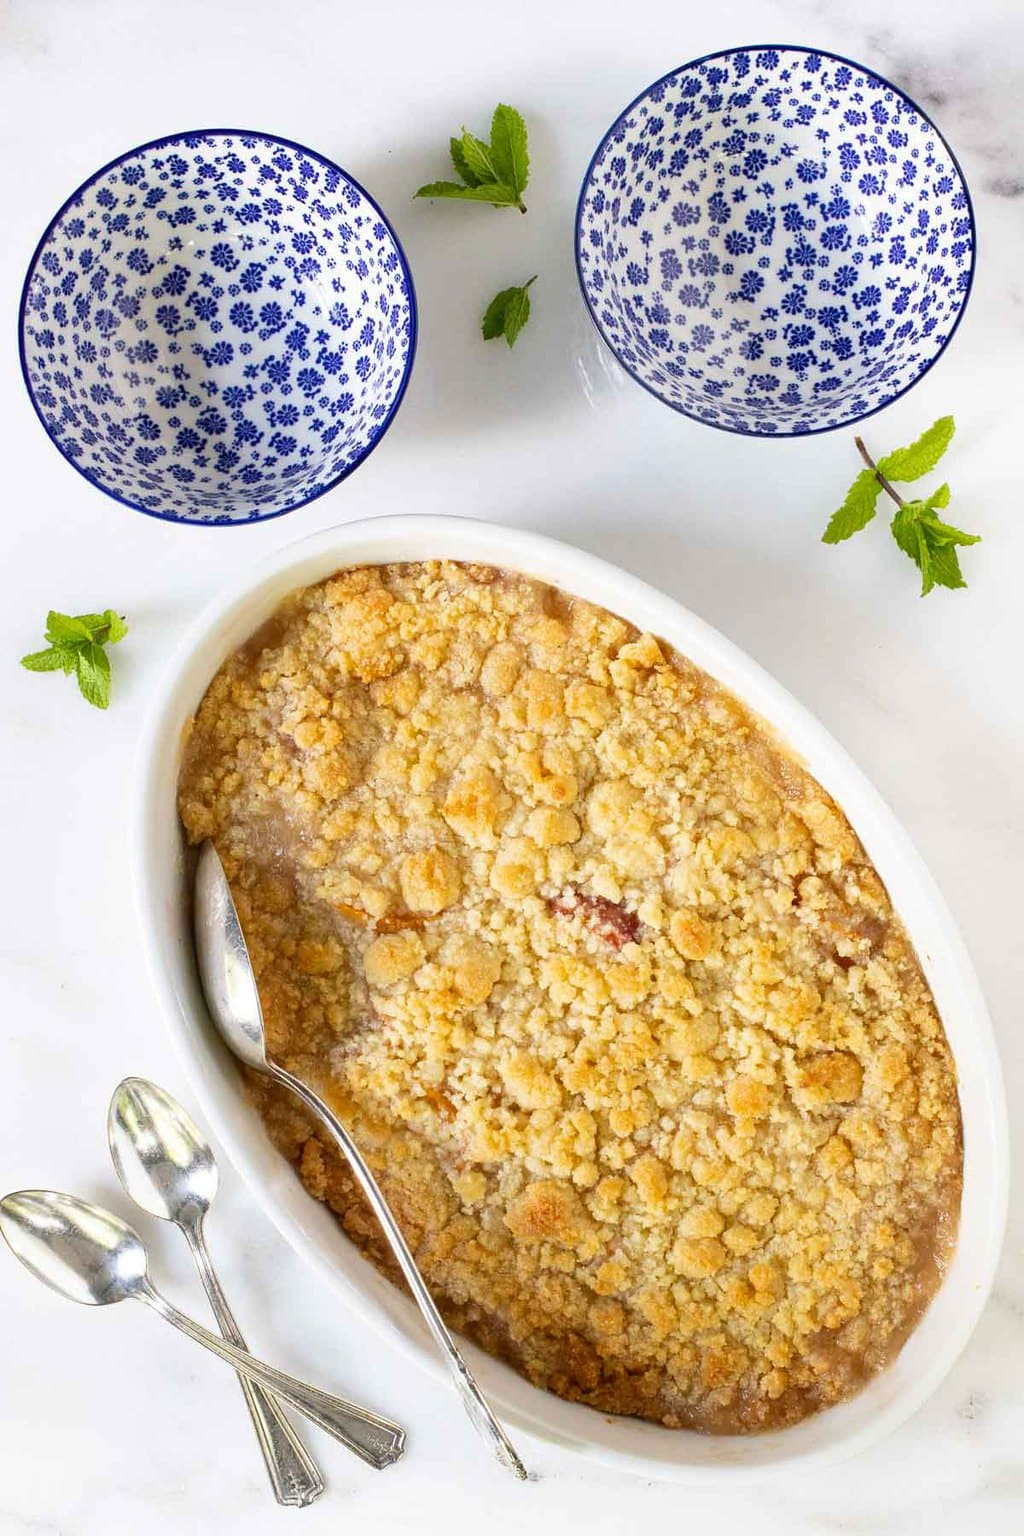 Overhead vertical photo of a Ridiculously Easy Peach Crumble in a white oval serving dish with blue and white patterned individual serving bowls along side.